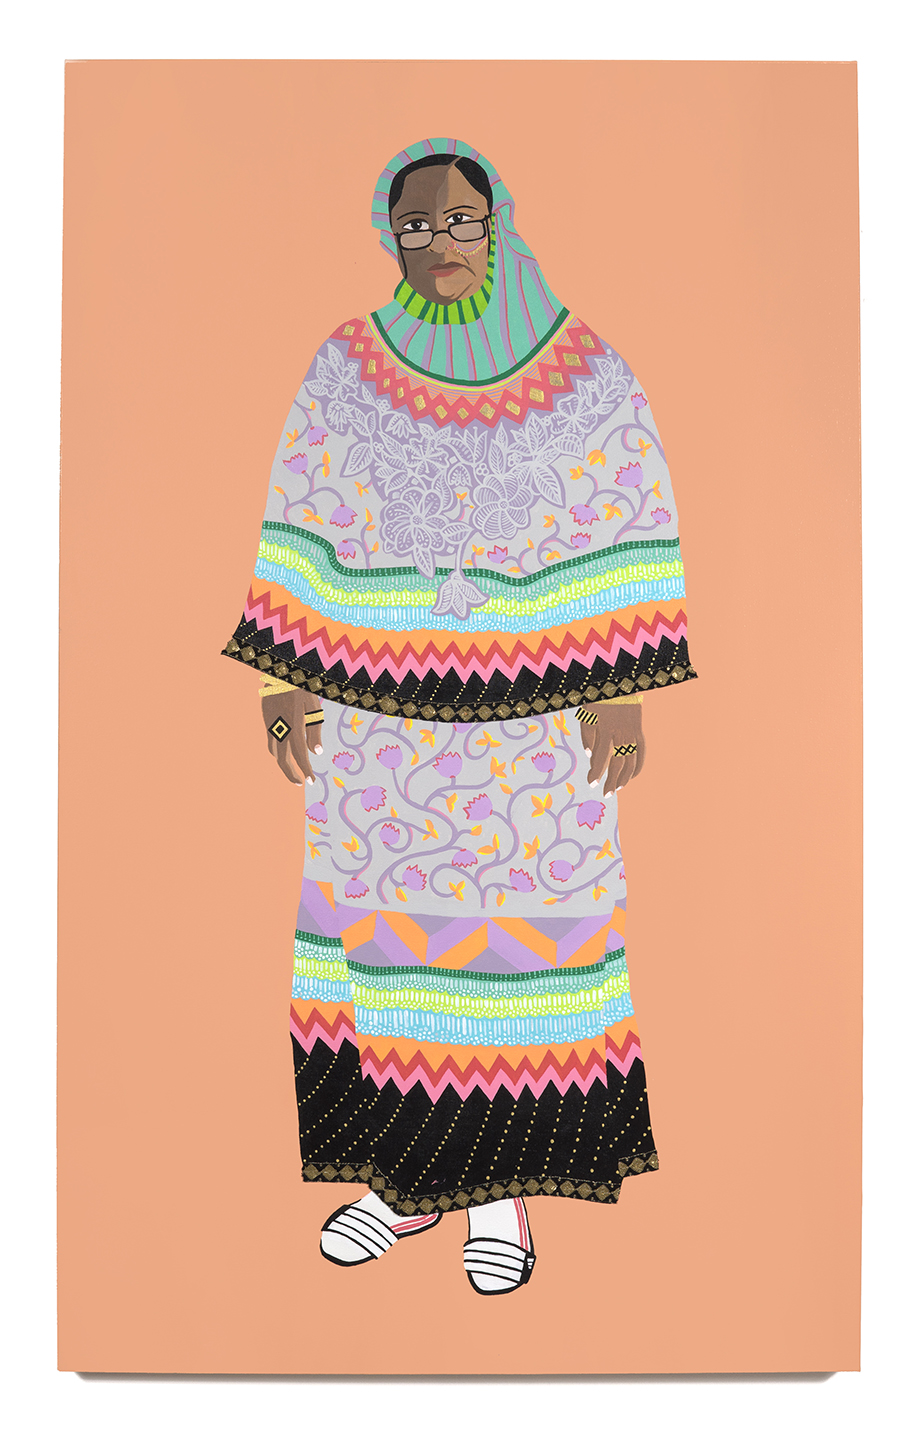 2016. Rashida Aunty   (  Upping the Aunty   series)   Acrylic and fabric on canvas   36 in. x 60 in.    Rashida Aunty wears a delicate hand-embroidered rida with lace and Mukesh work throughout. The contrasting striped pardi is folded away from the face. She pulls the outfit together with lightweight Adidas slippers and white sport socks for cooler days.     Available